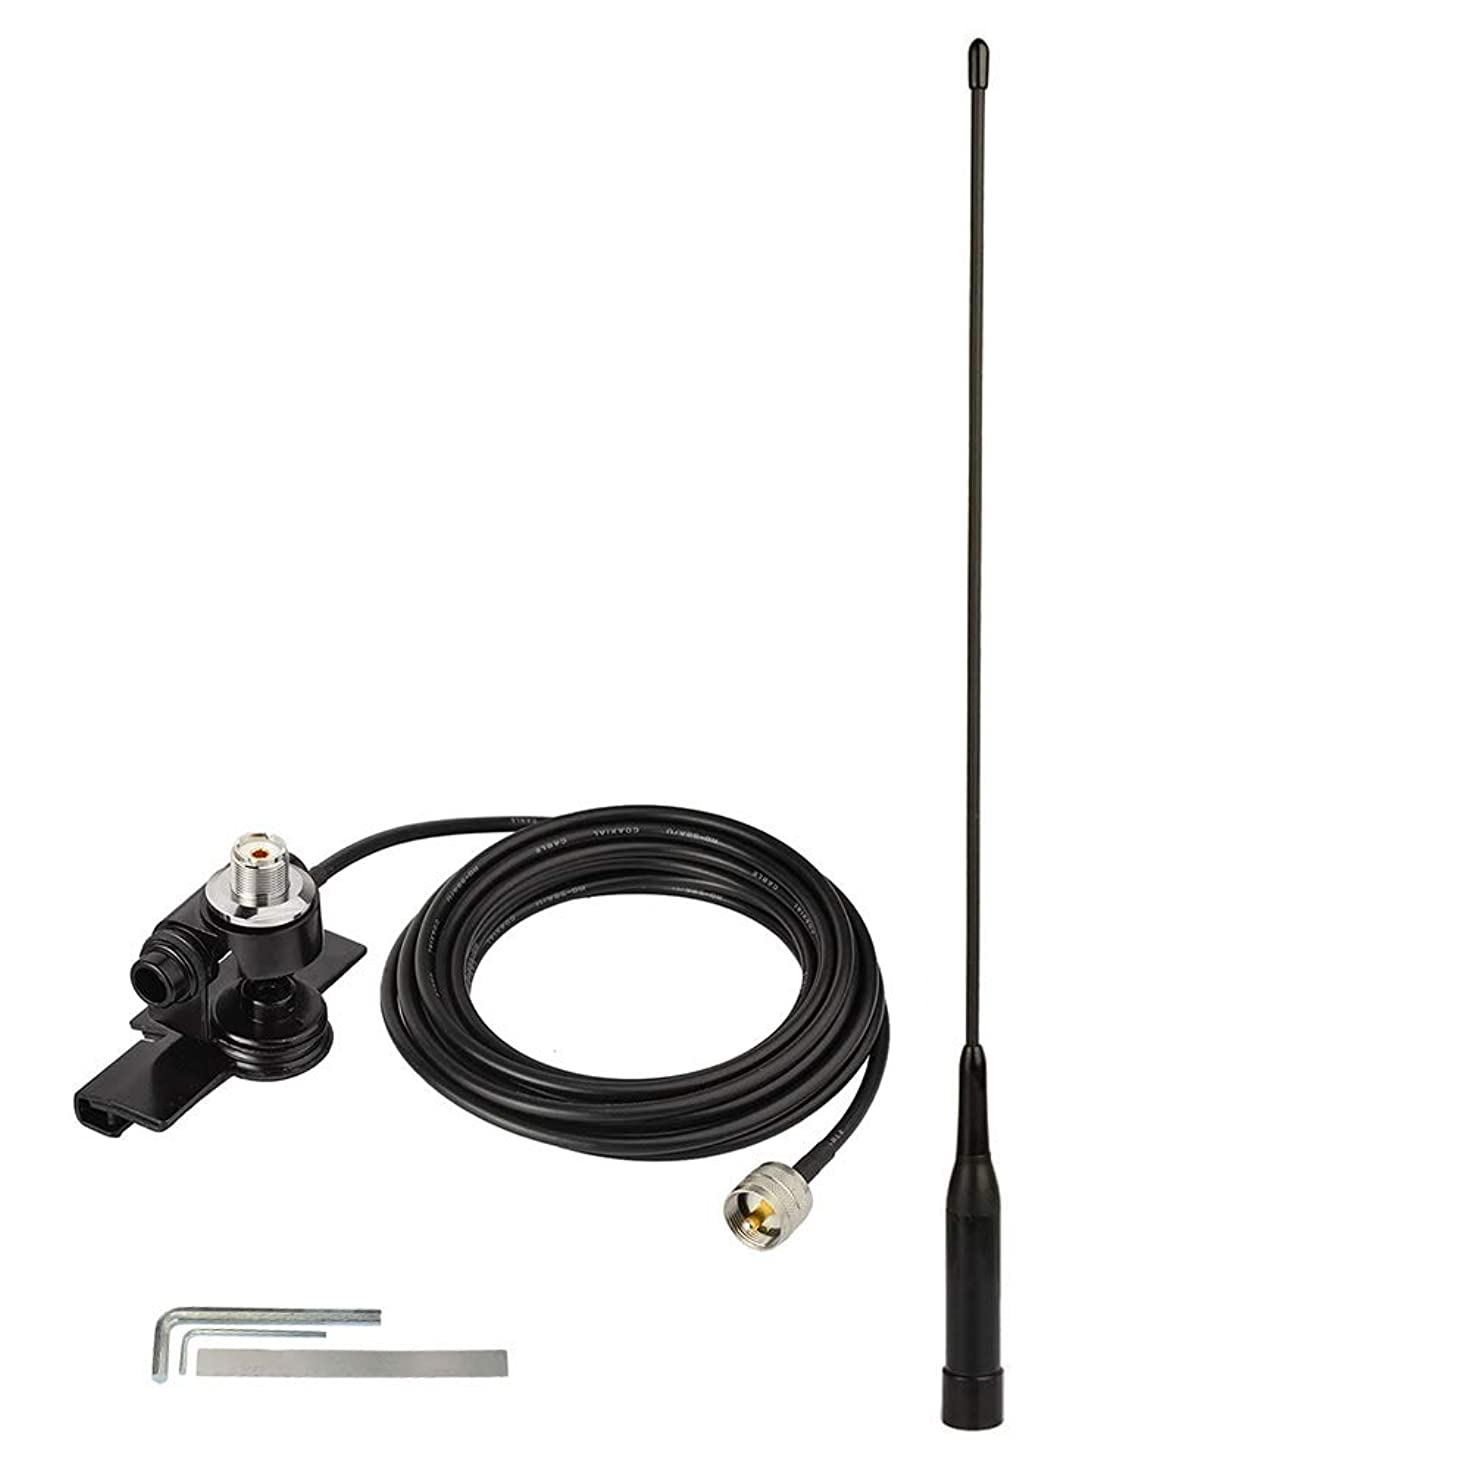 Bingfu VHF UHF 136-174MHz 400-470MHz Soft Whip CB Radio Antenna,Vehicle Car SUV Truck CB Radio Ham Radio Amateur Radio Antenna with Lip Mount Fixed Bracket UHF PL-259 Male 5m/16.5 feet RG58 Cable